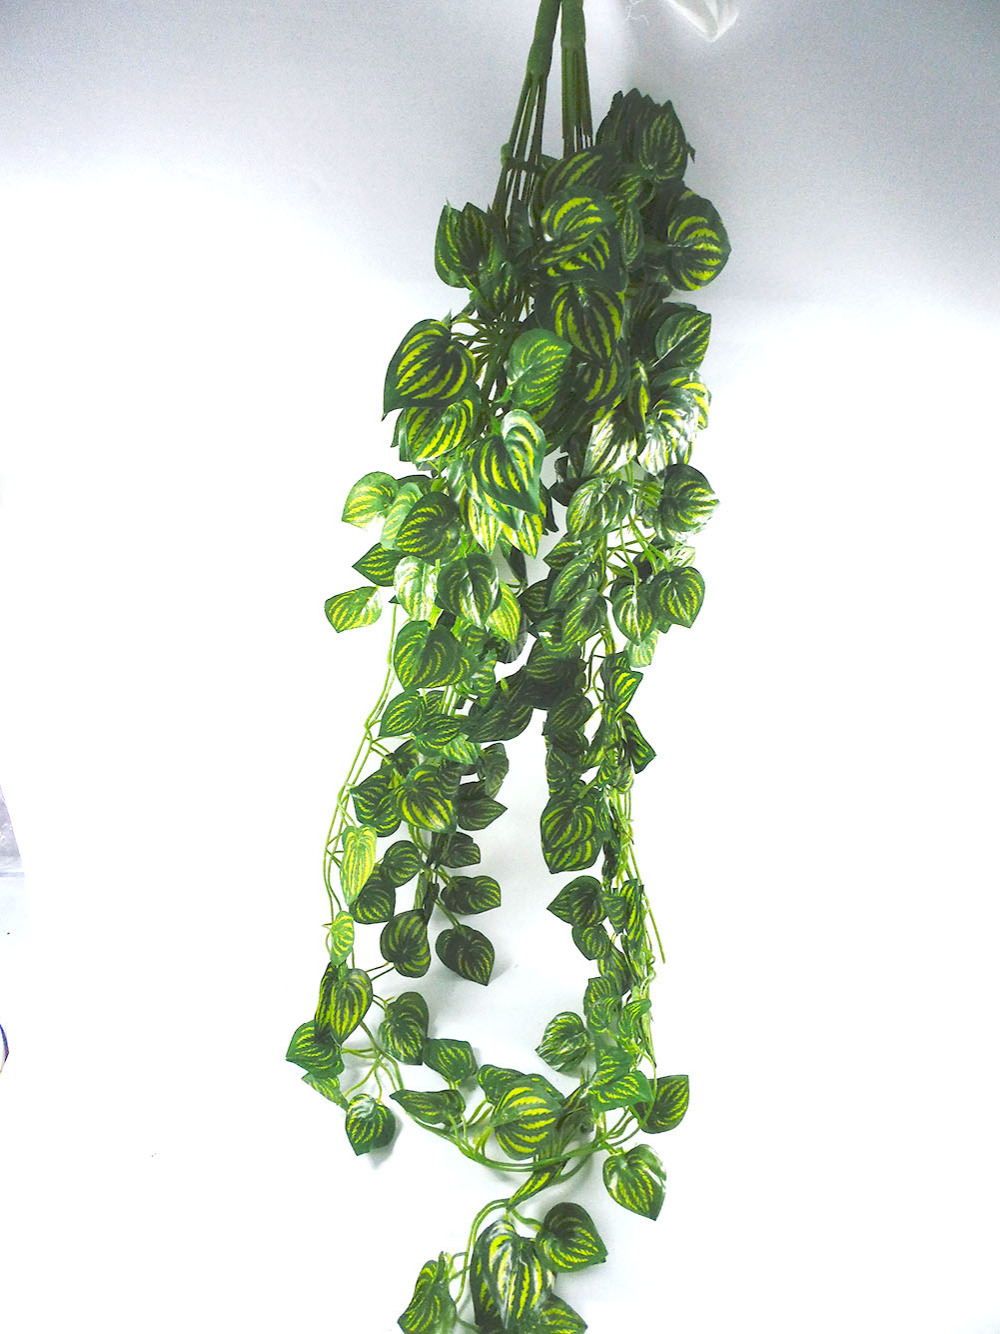 2pc/lot Artificial Leaves 87cm Watermelon Flower Vine Rattan Home Decorative Wreaths Display Party Wedding Decor Plants(China (Mainland))